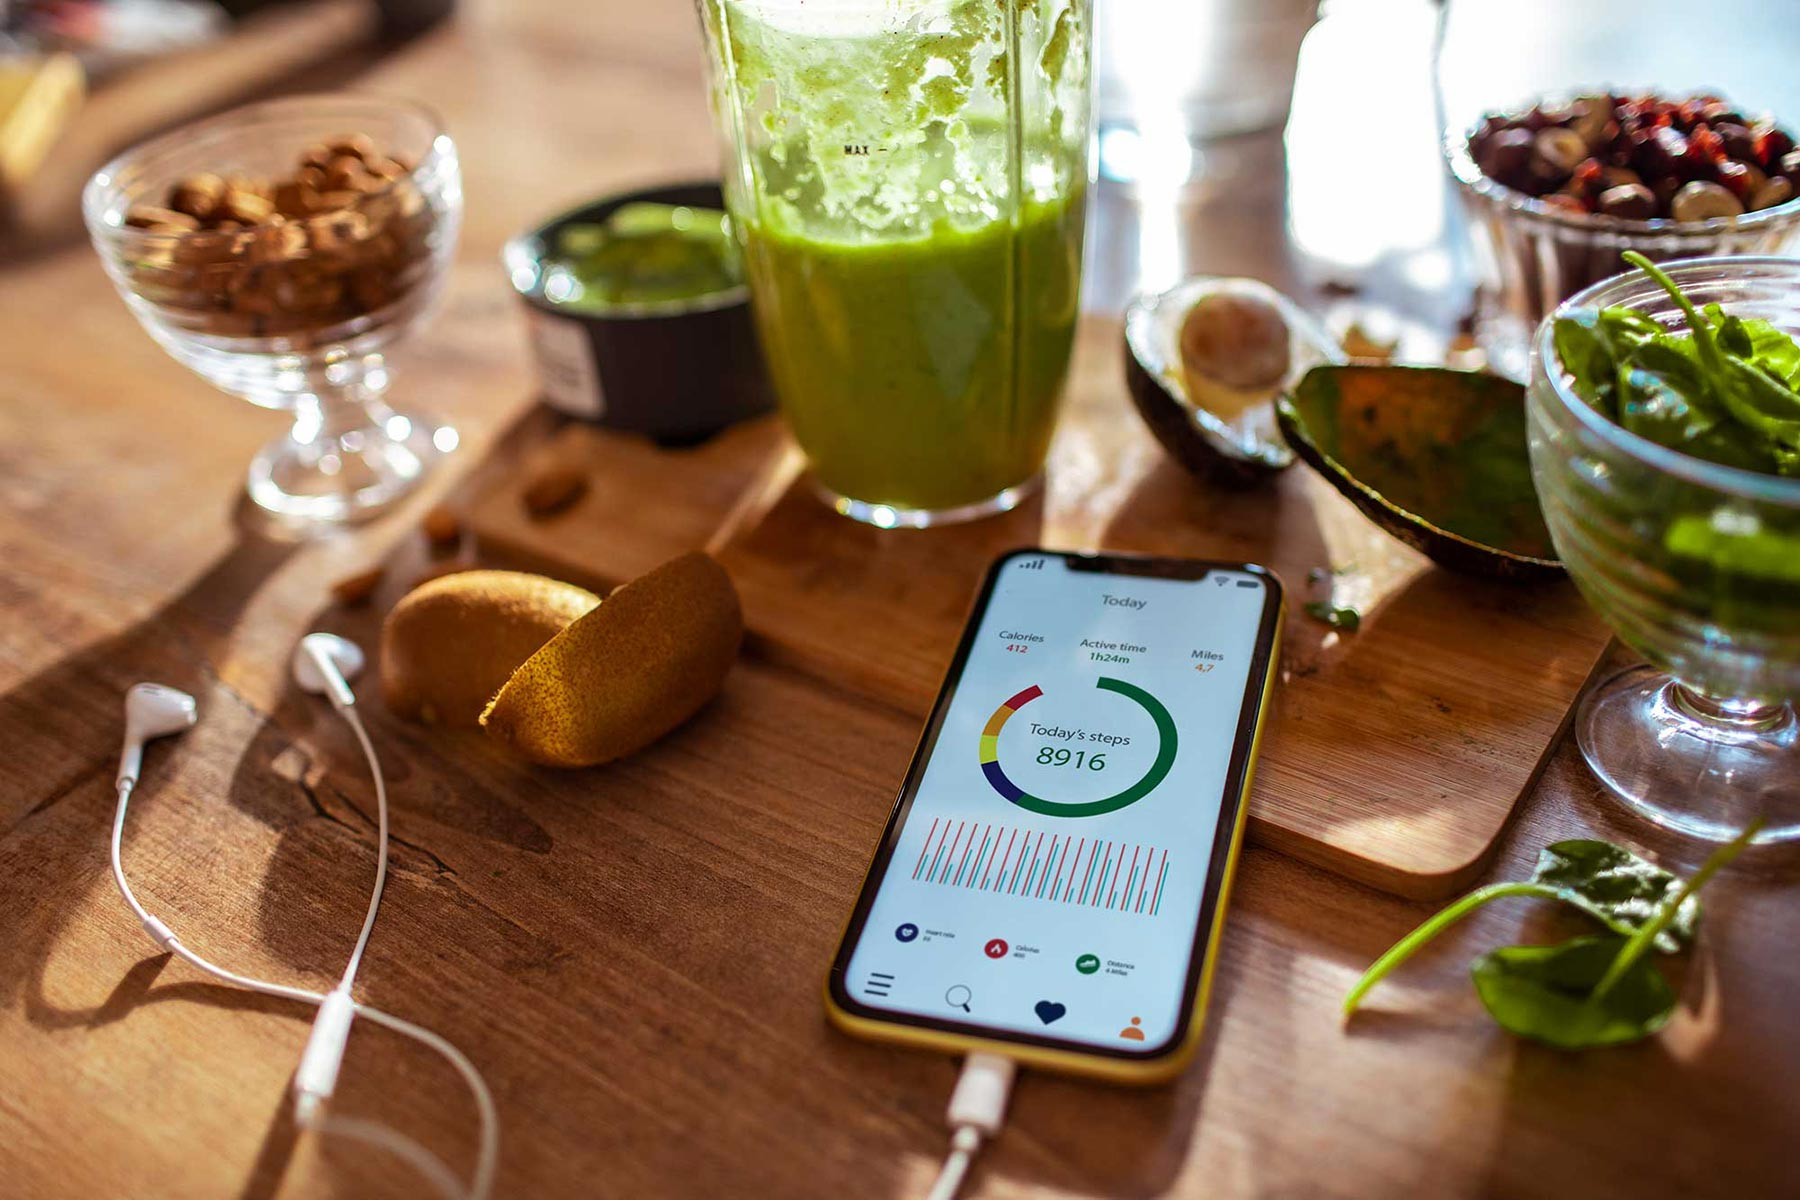 A mobile phone with a pedometer app and a healthy smoothie